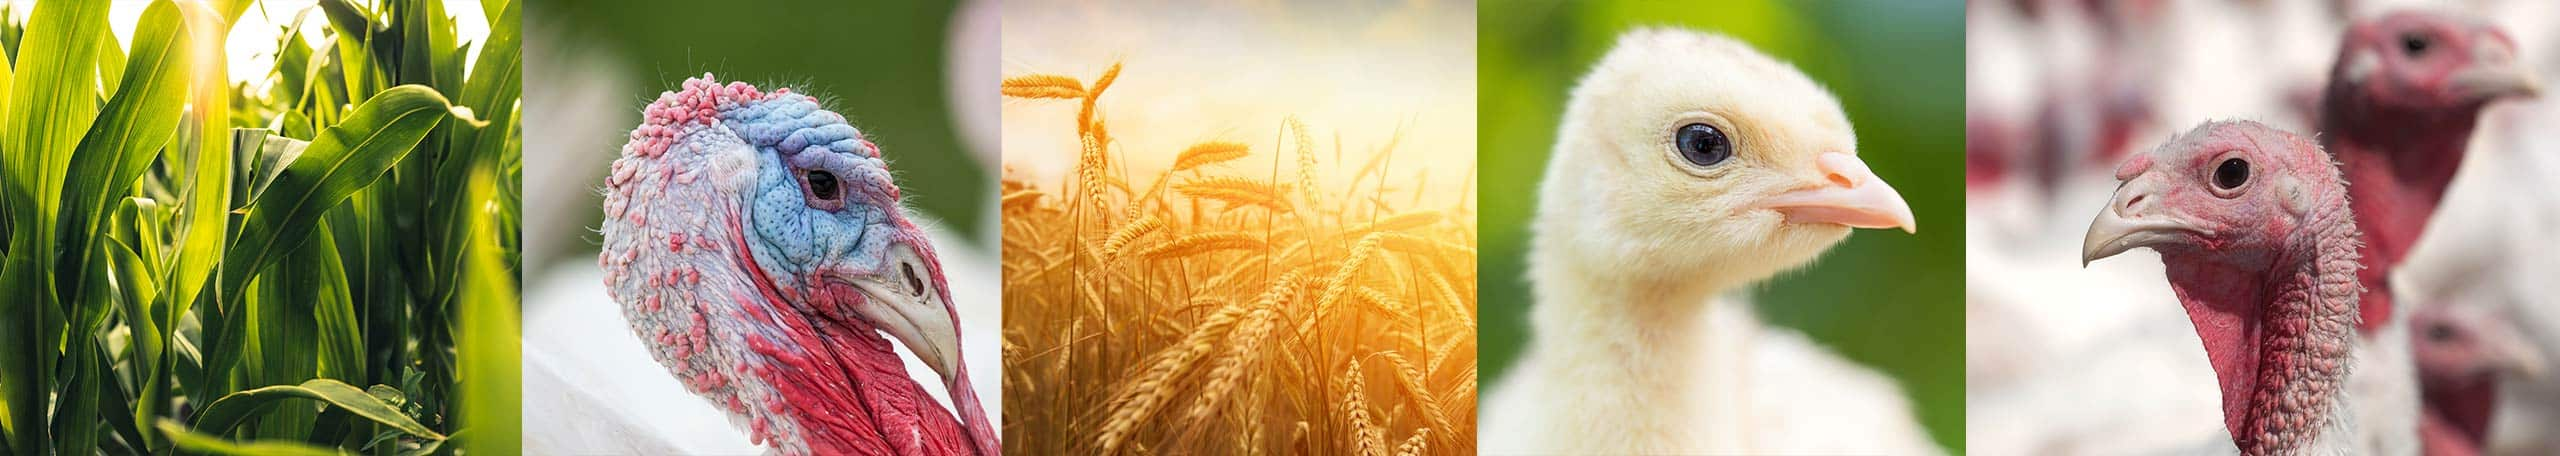 Farbest Foods Sustainability Graphic Header